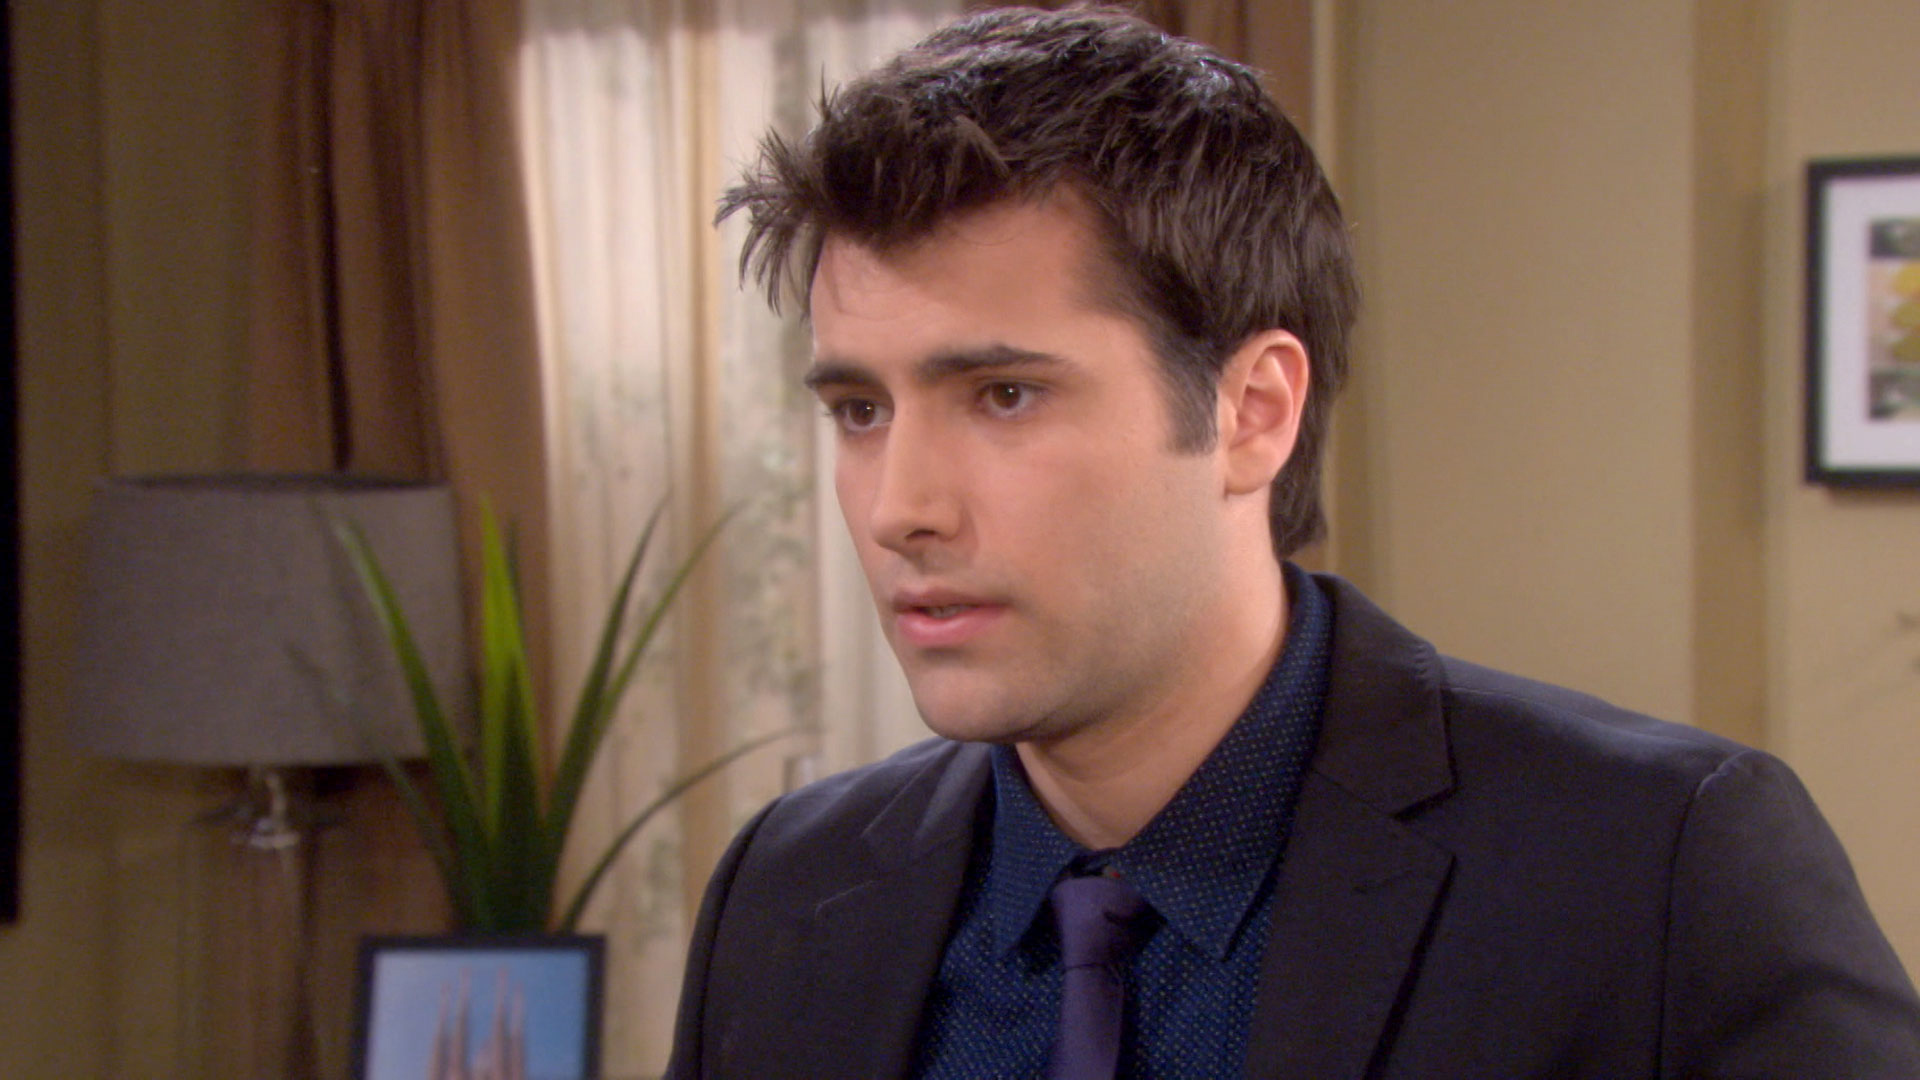 Will realizes Sonny has been keeping a secret from him.